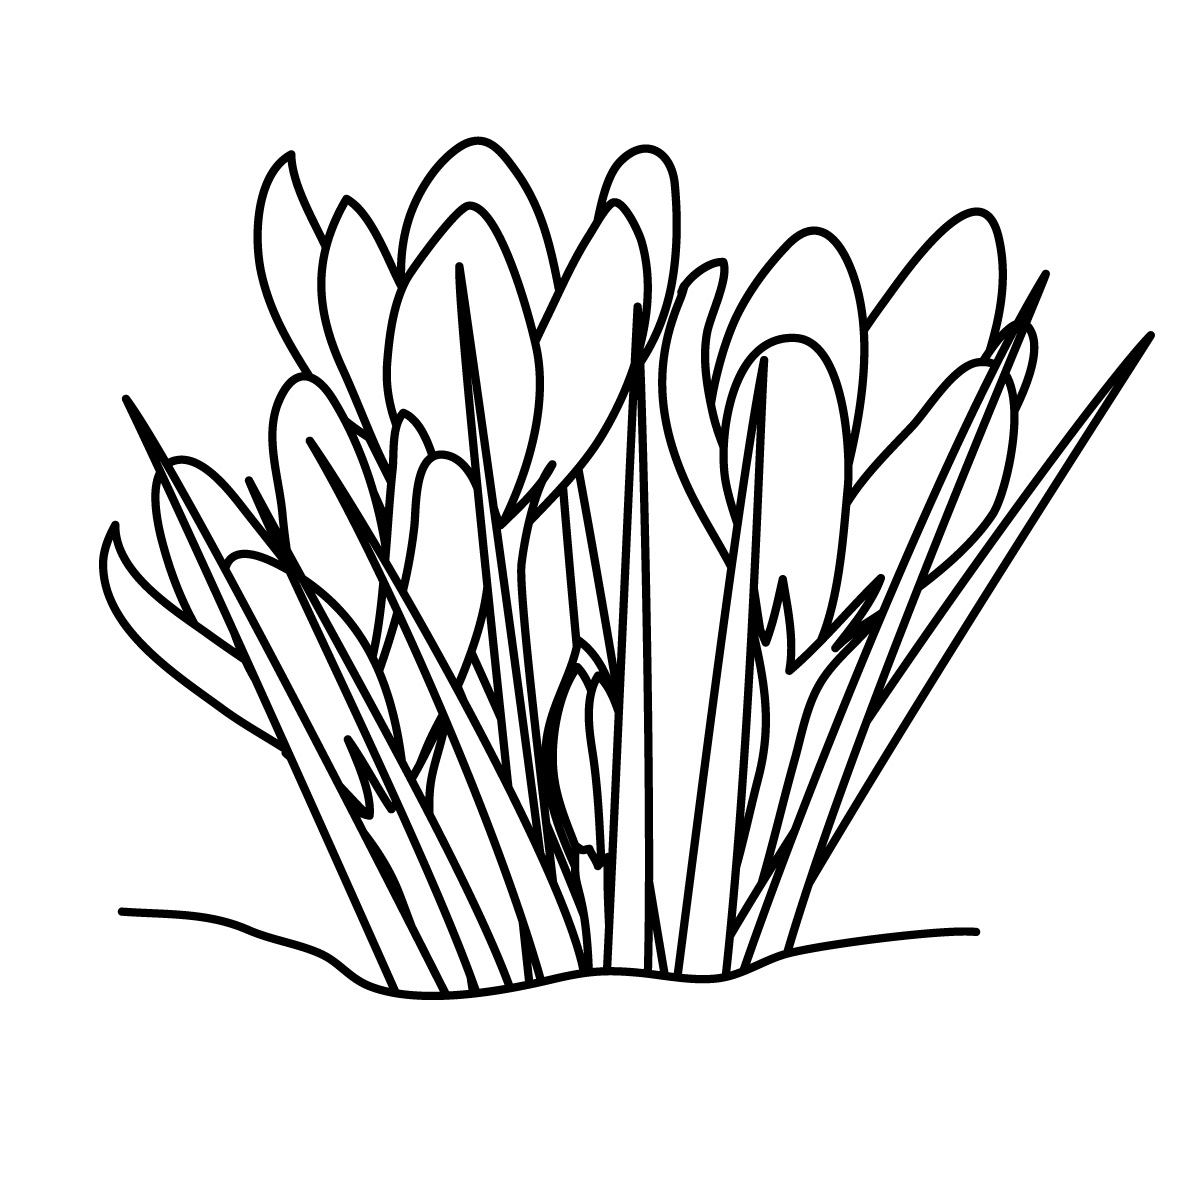 Spring clipart black and white free banner transparent download Black And White Spring Clip Art - Cliparts.co banner transparent download